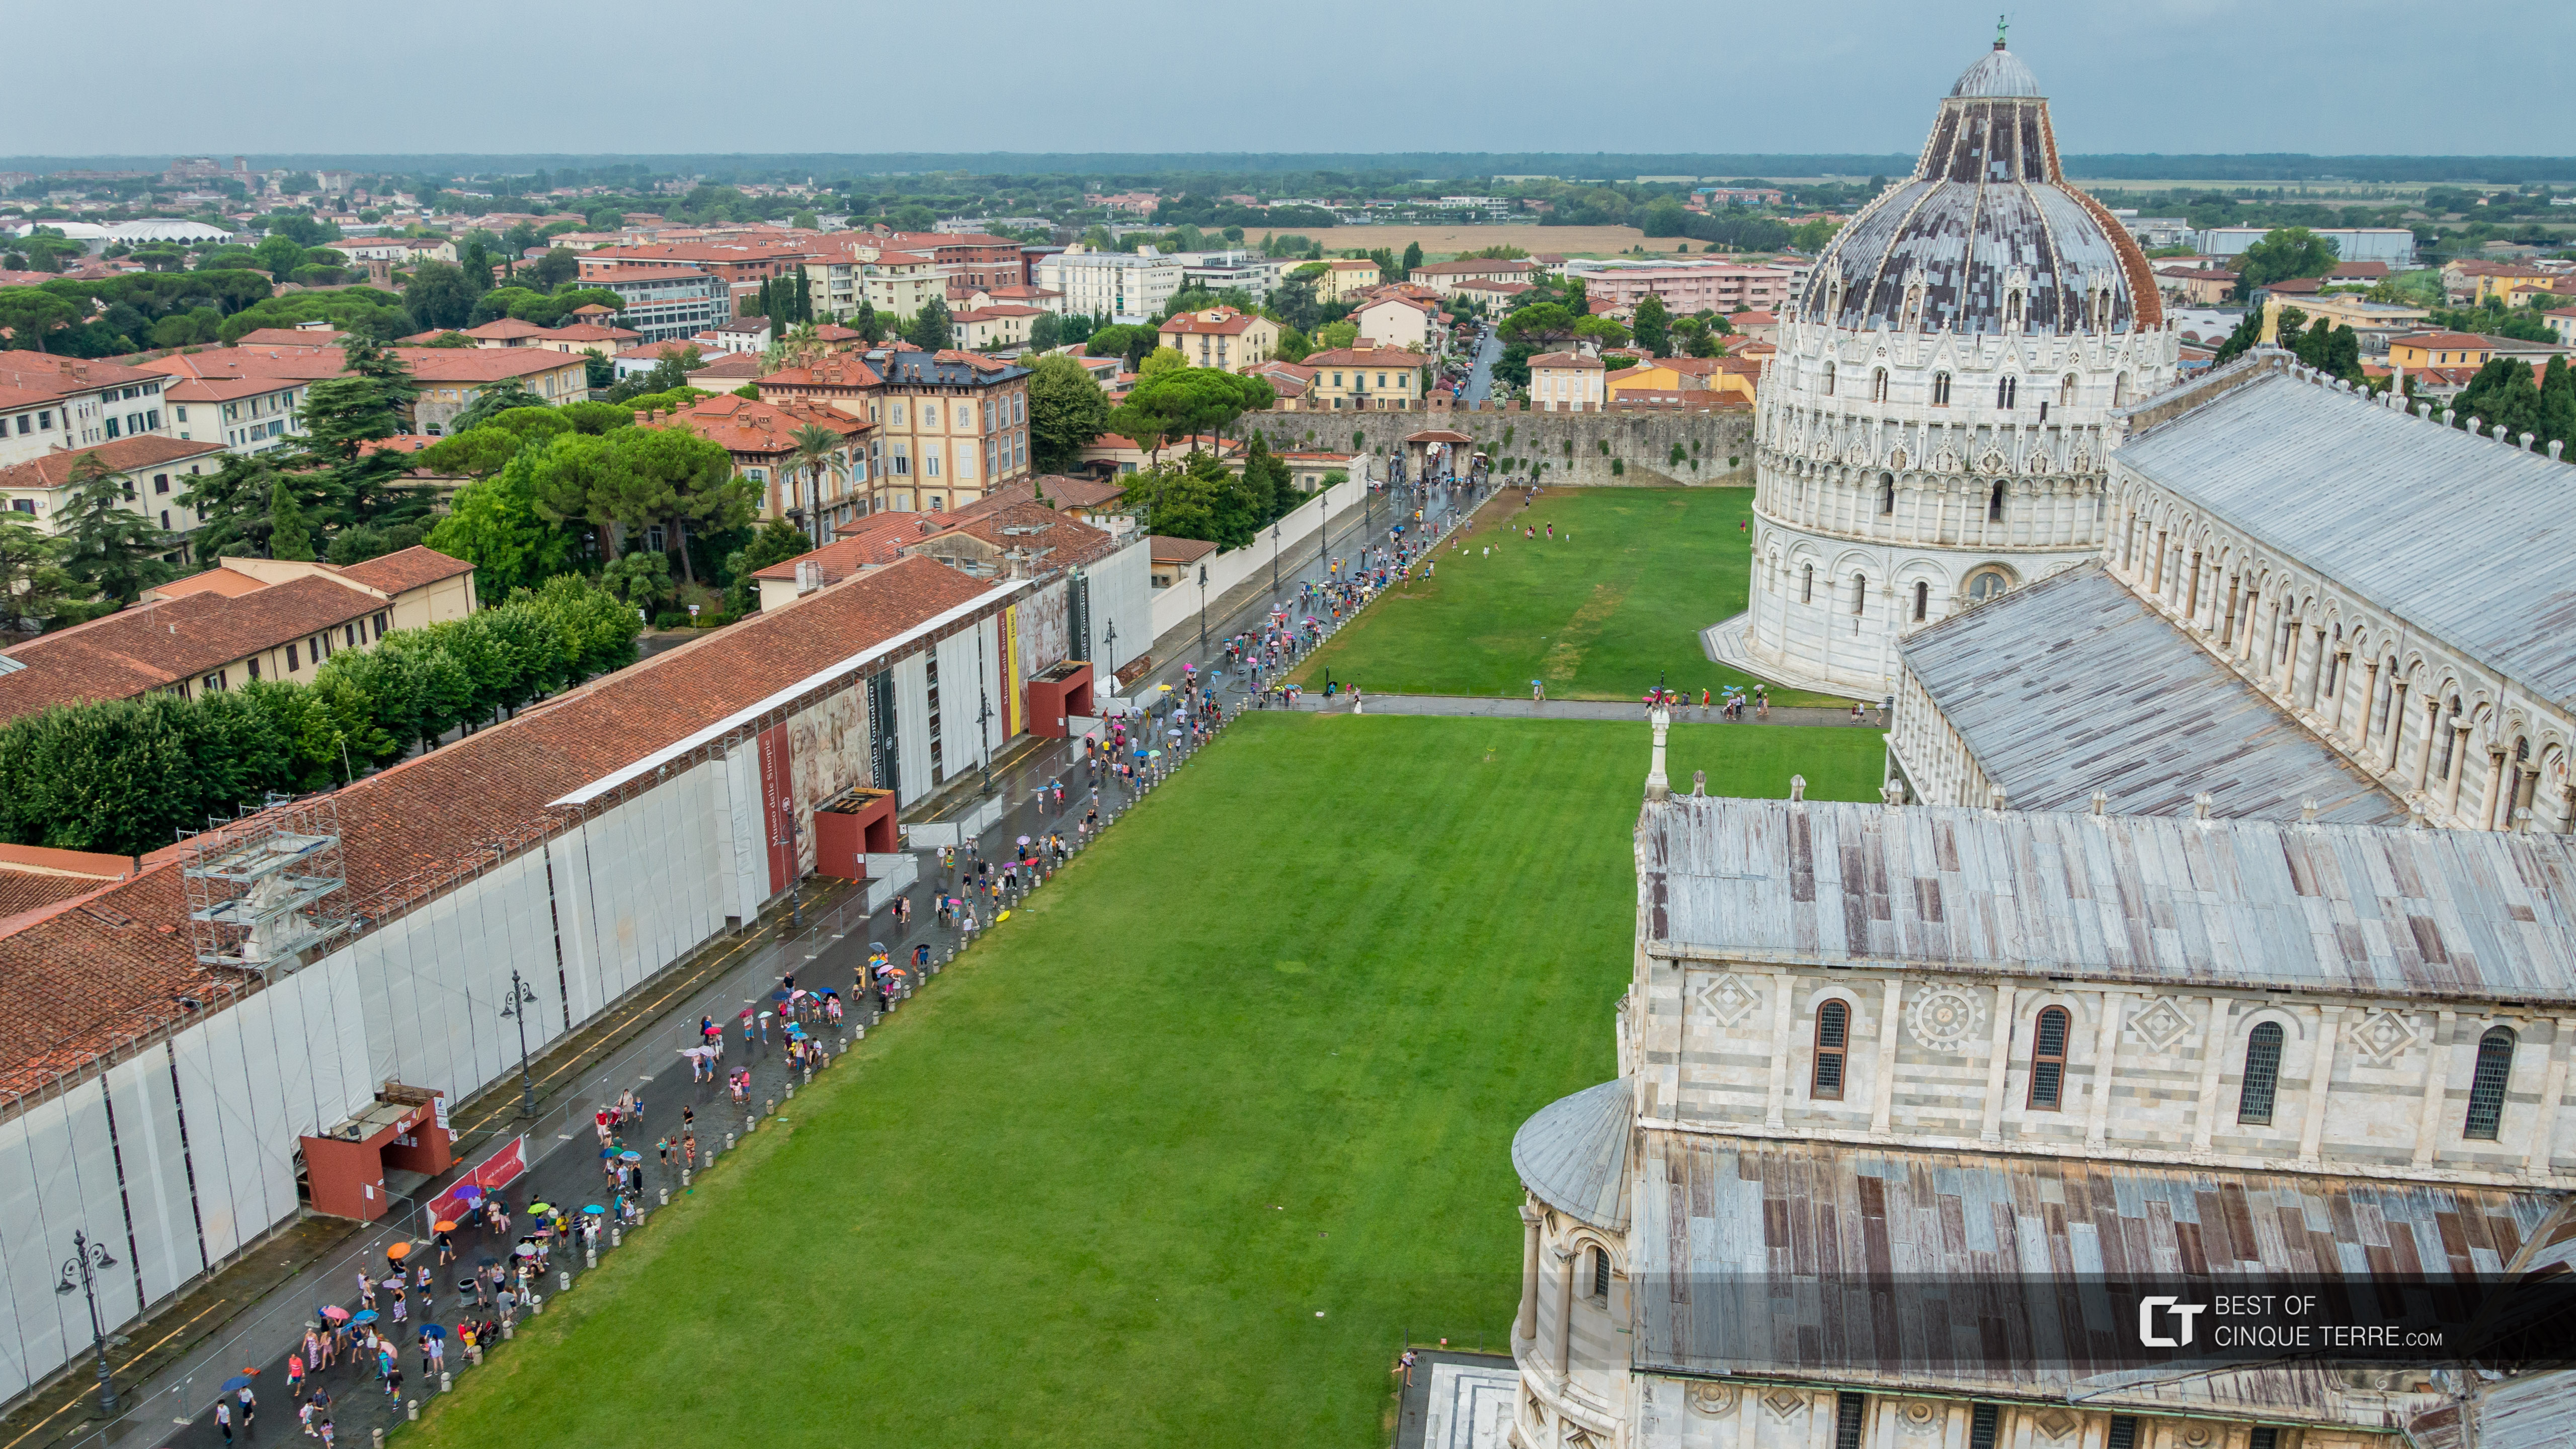 Piazza dei Miracoli seen from the Leaning Tower in the rain, Pisa, Italy